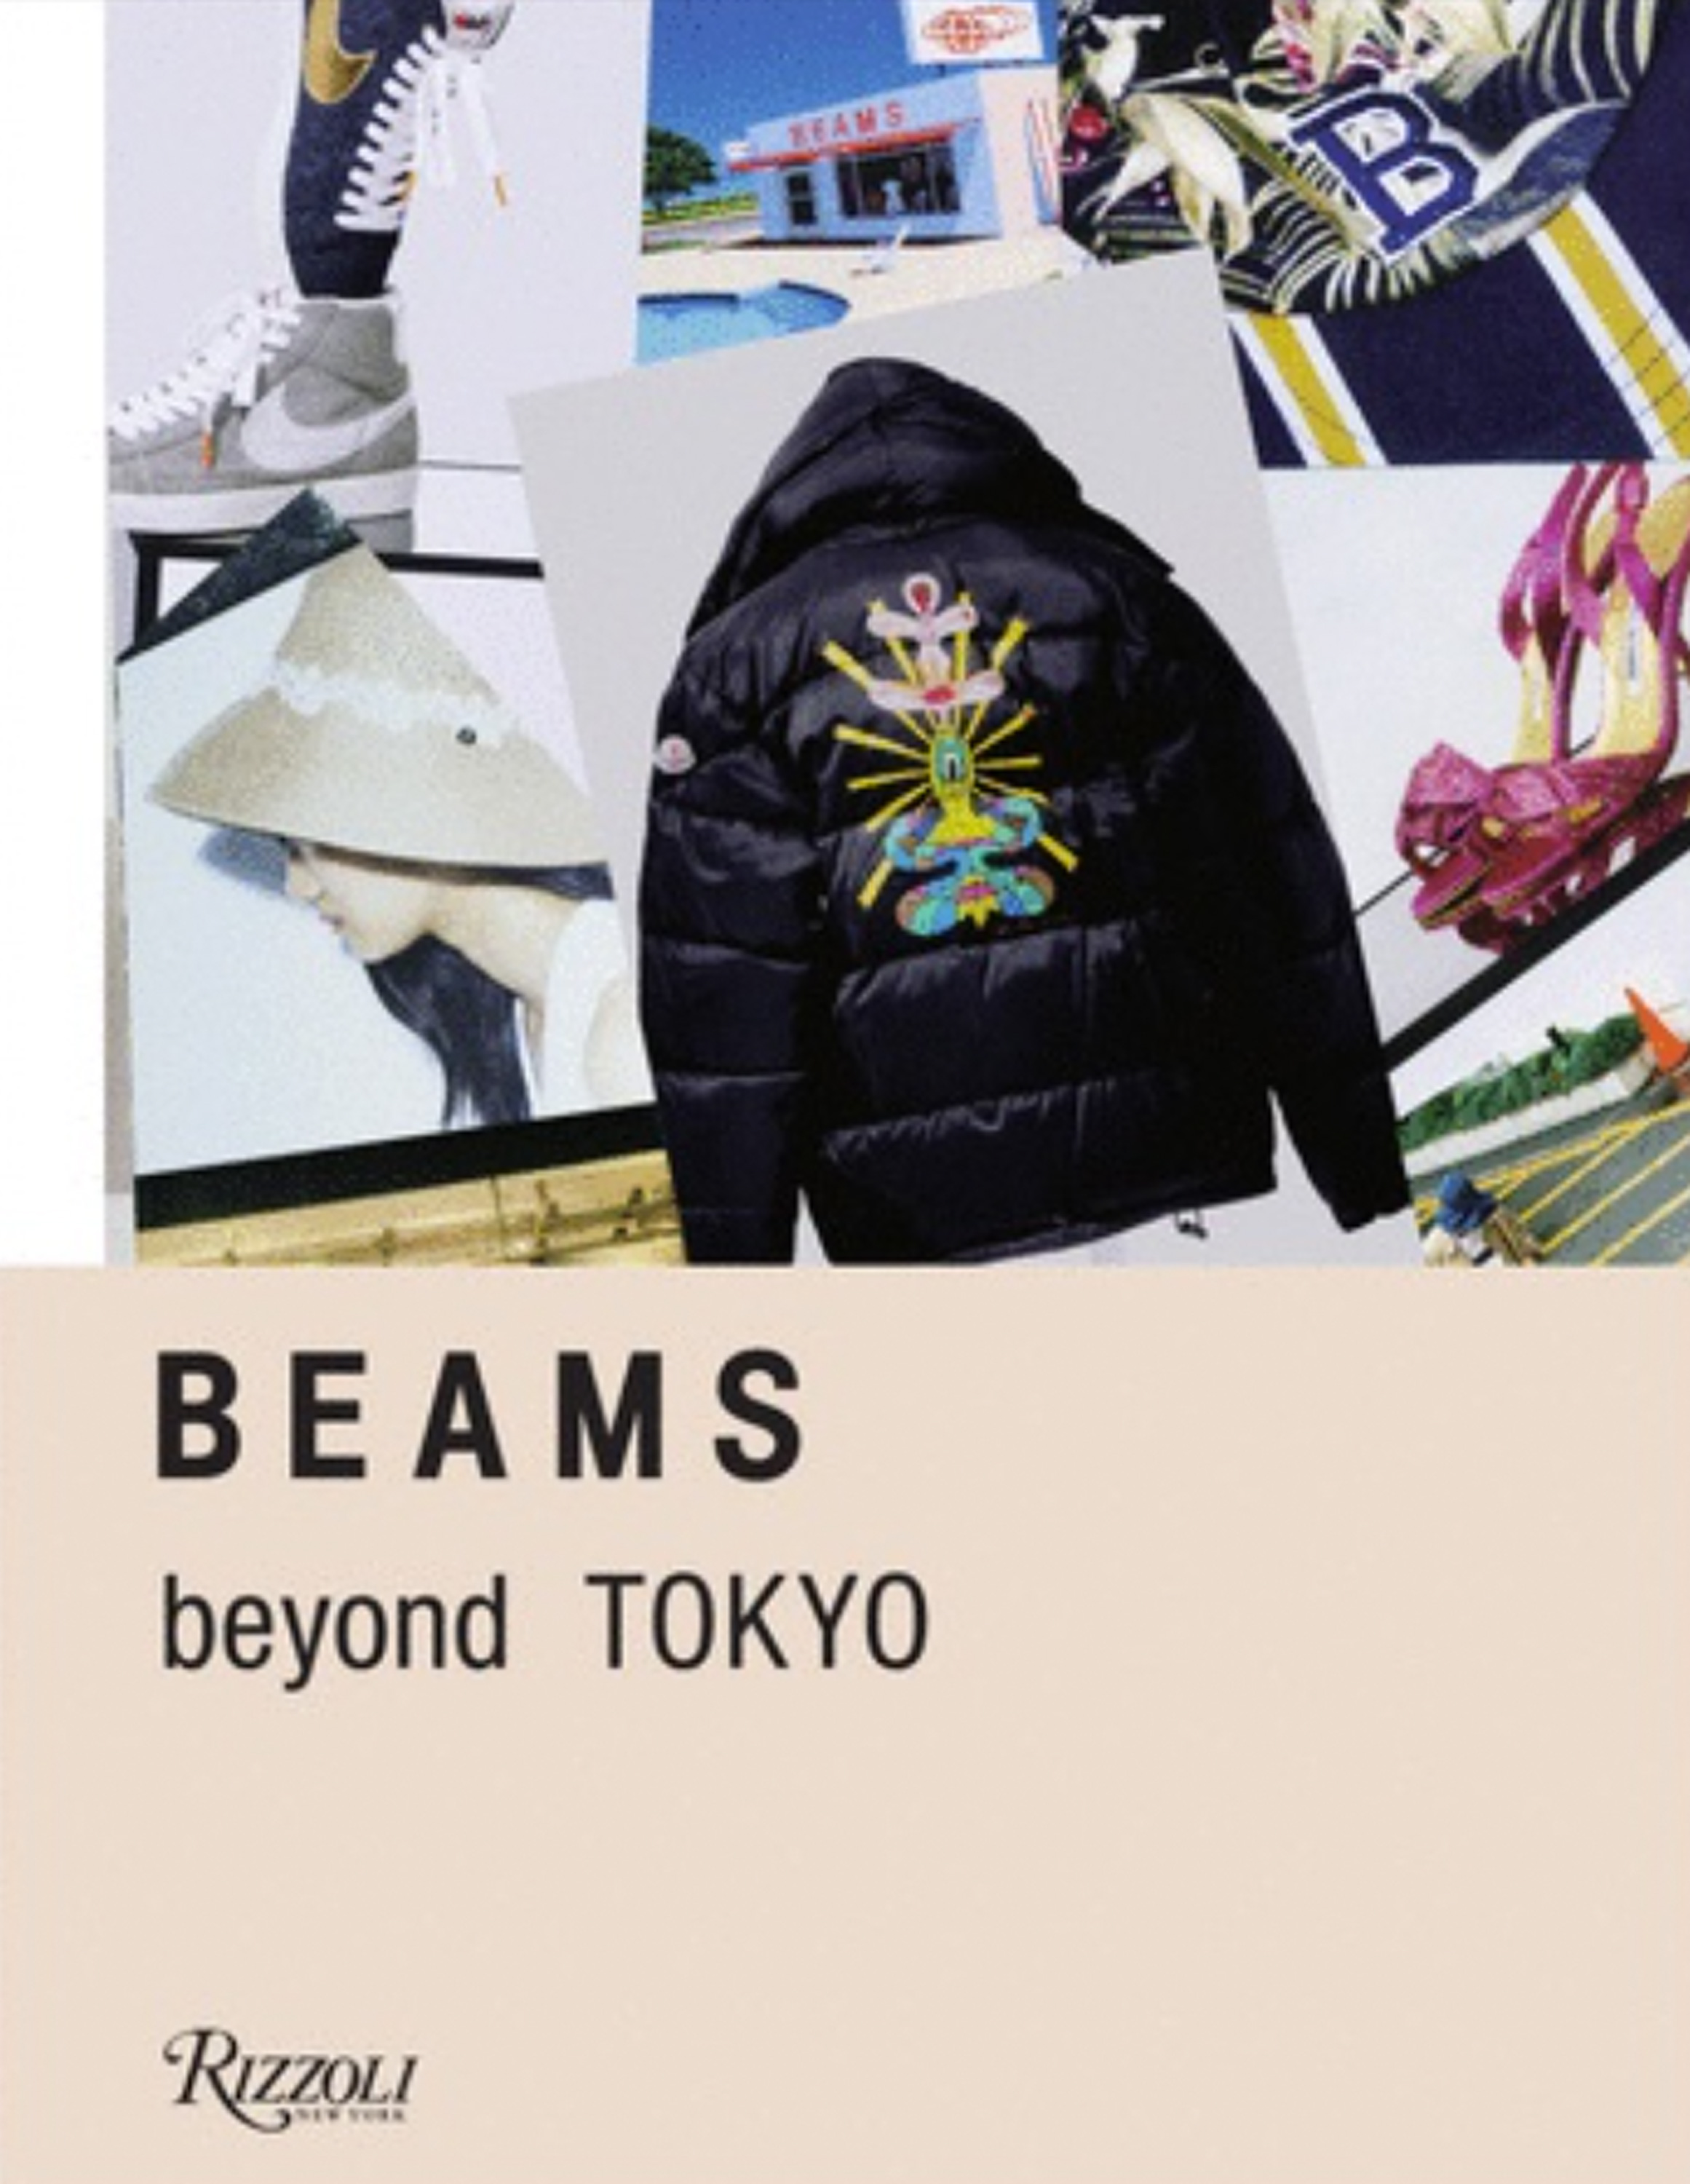 Influential japanese lifestyle and apparel brand beams has - Influential Japanese Lifestyle And Apparel Brand Beams Has 18